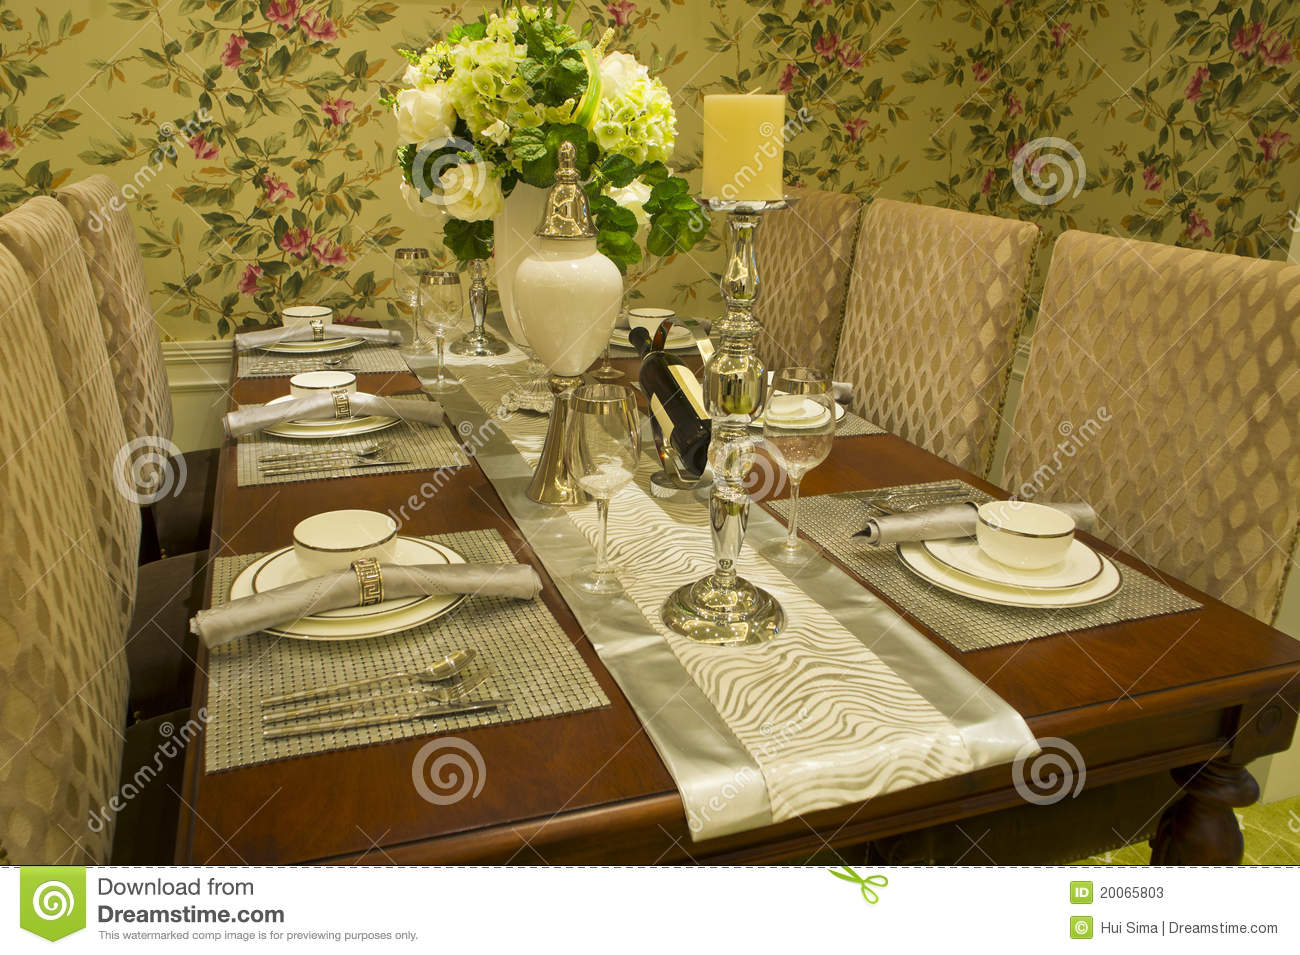 Fine dining room stock photos image 20065803 for Fine dining table setting